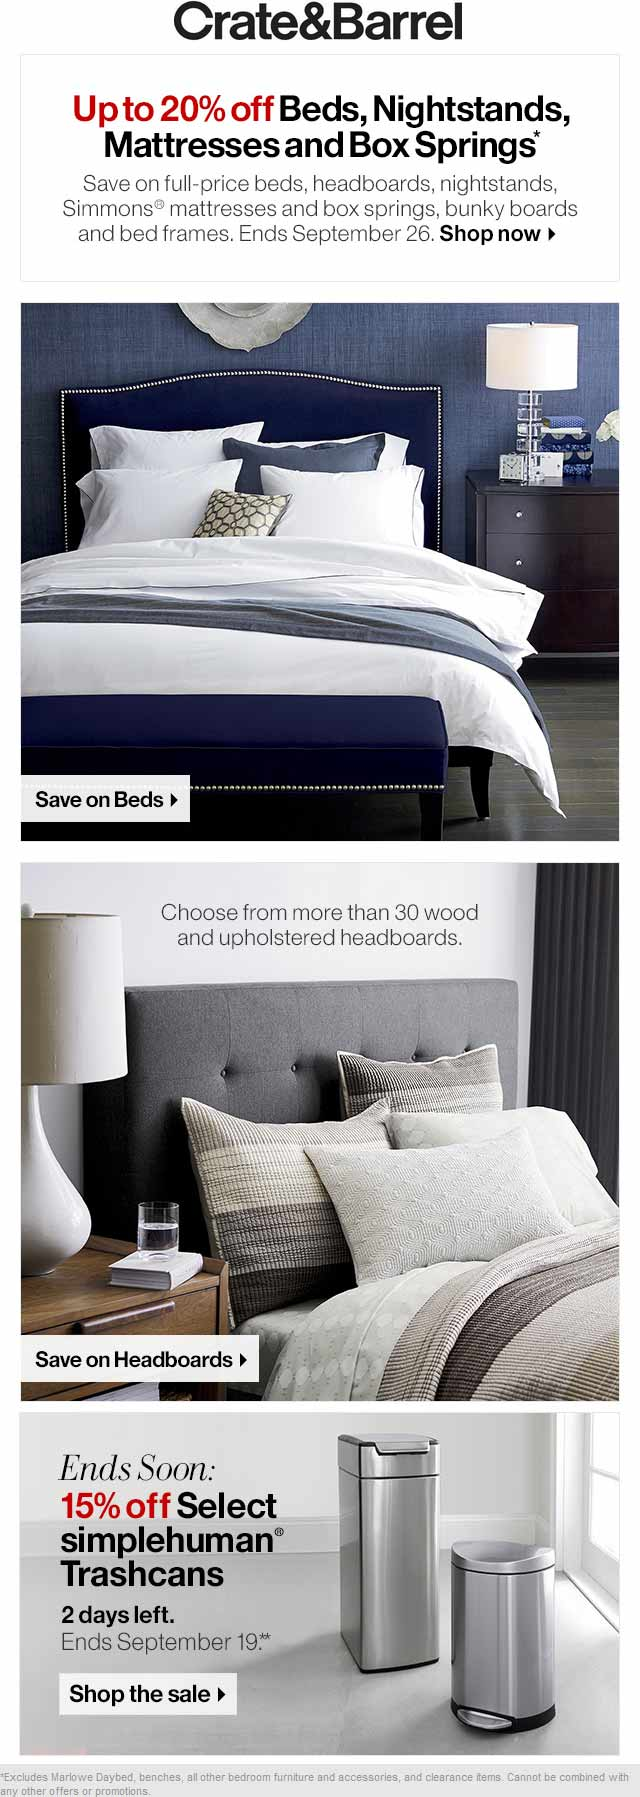 Crate&Barrel.com Promo Coupon 20% off beds & mattresses at Crate & Barrel